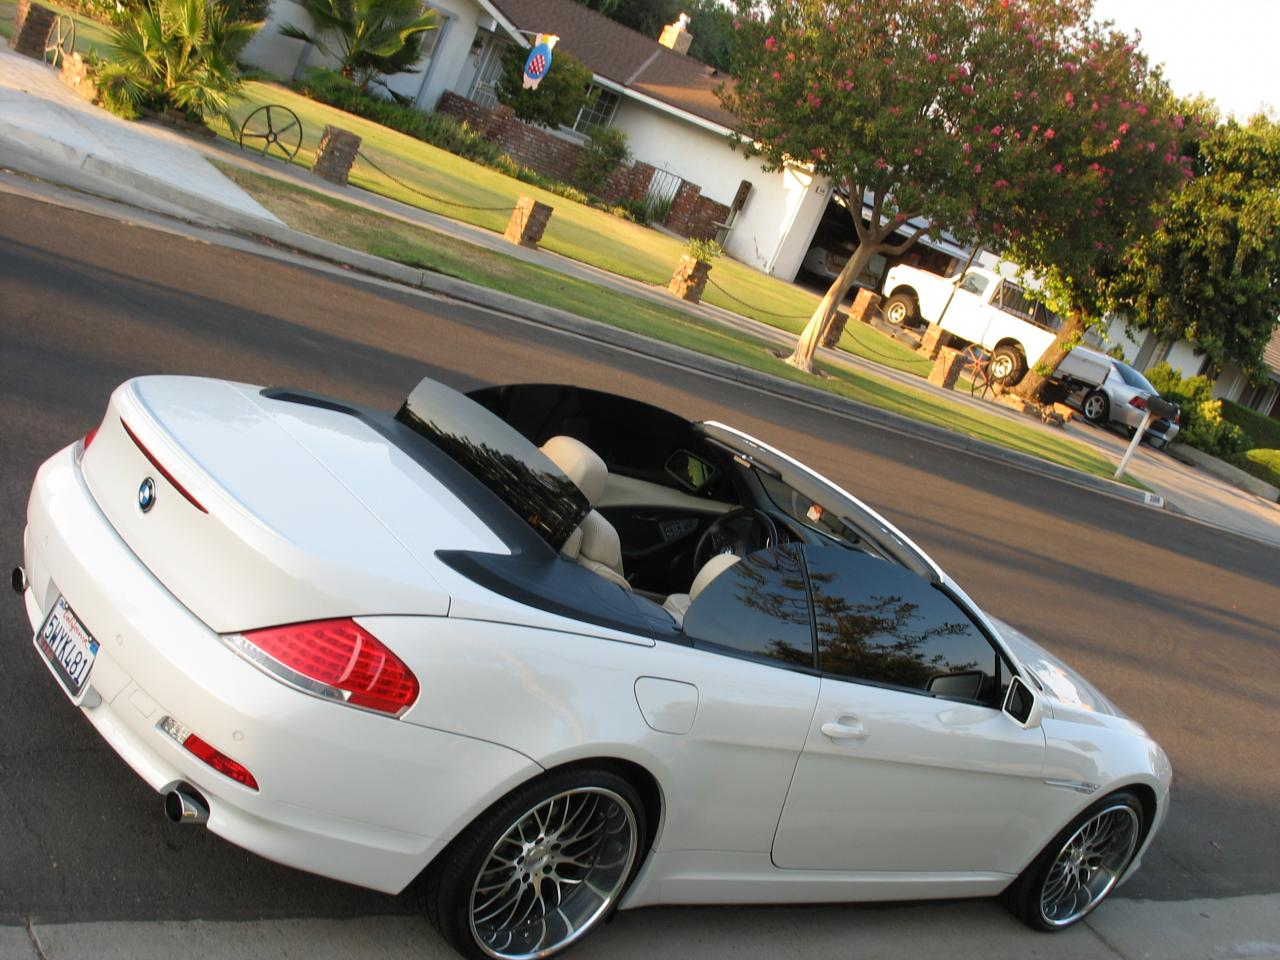 FOR SALE BMW Ci CONVERTIBLE PREMIUM SPORT Bimmerfest - 2004 bmw 645ci convertible for sale